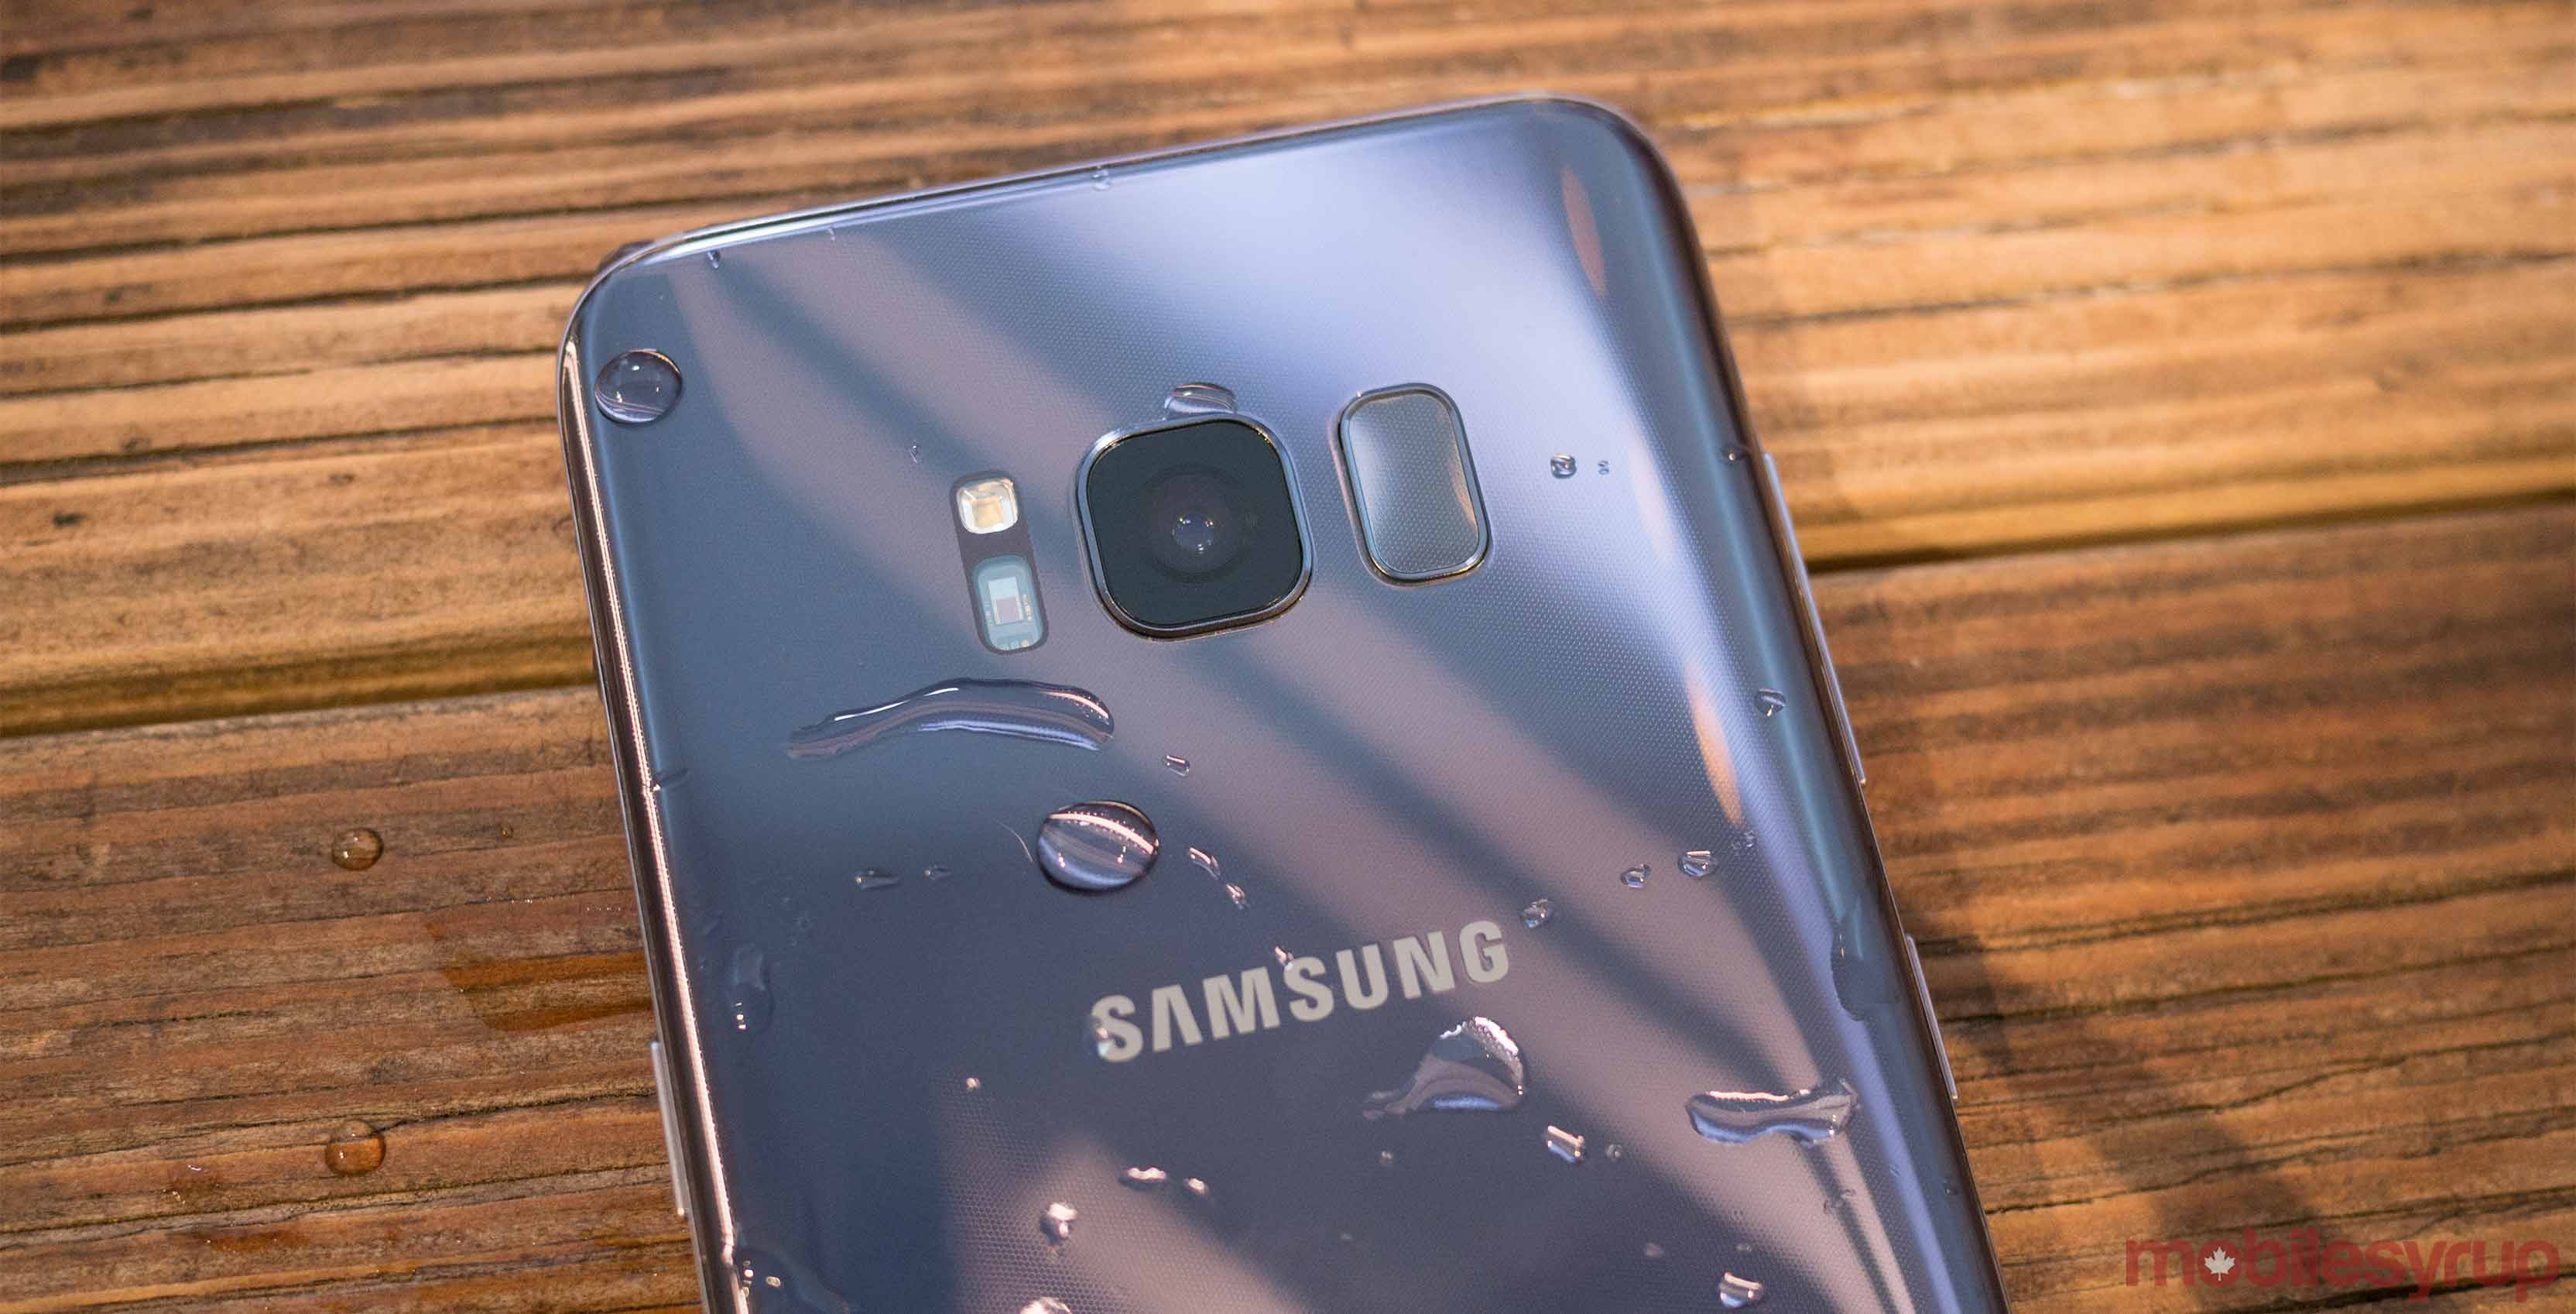 Samsung Galaxy S8 with water on it